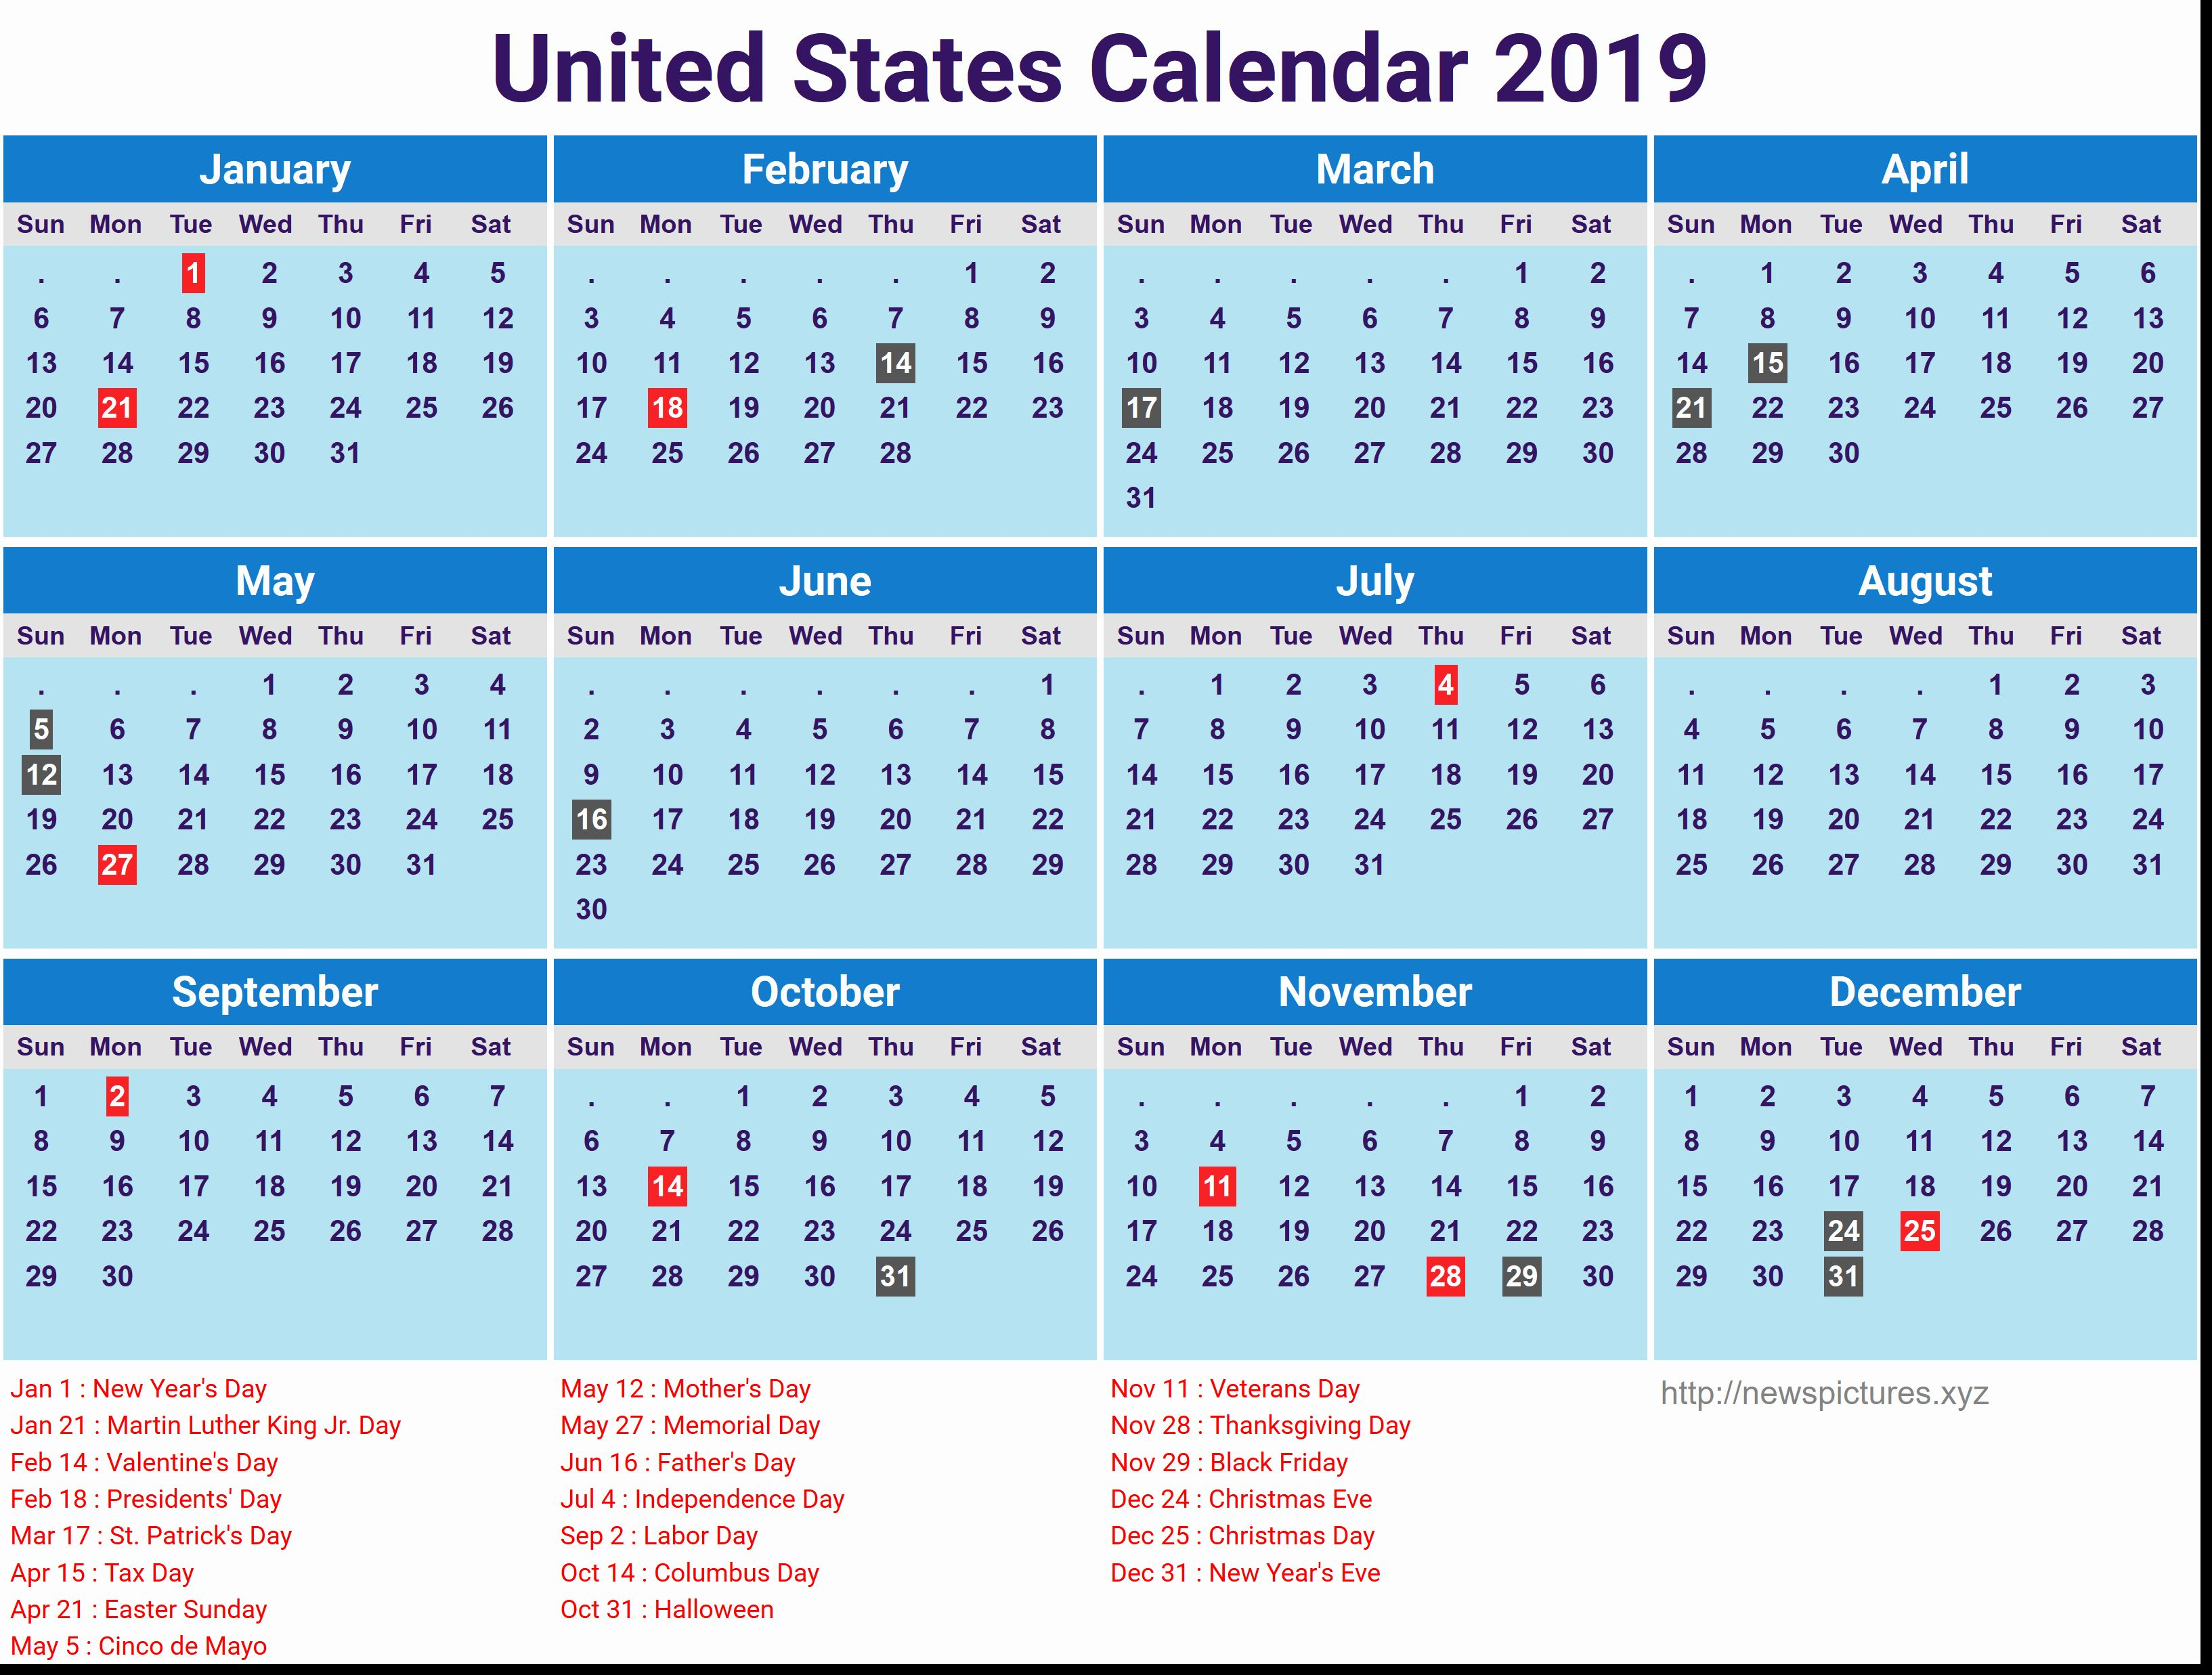 Fresh 47 Illustration Korea Public Holiday Calendar 2020 within University Of Phoenix Holiday Calendar 2020